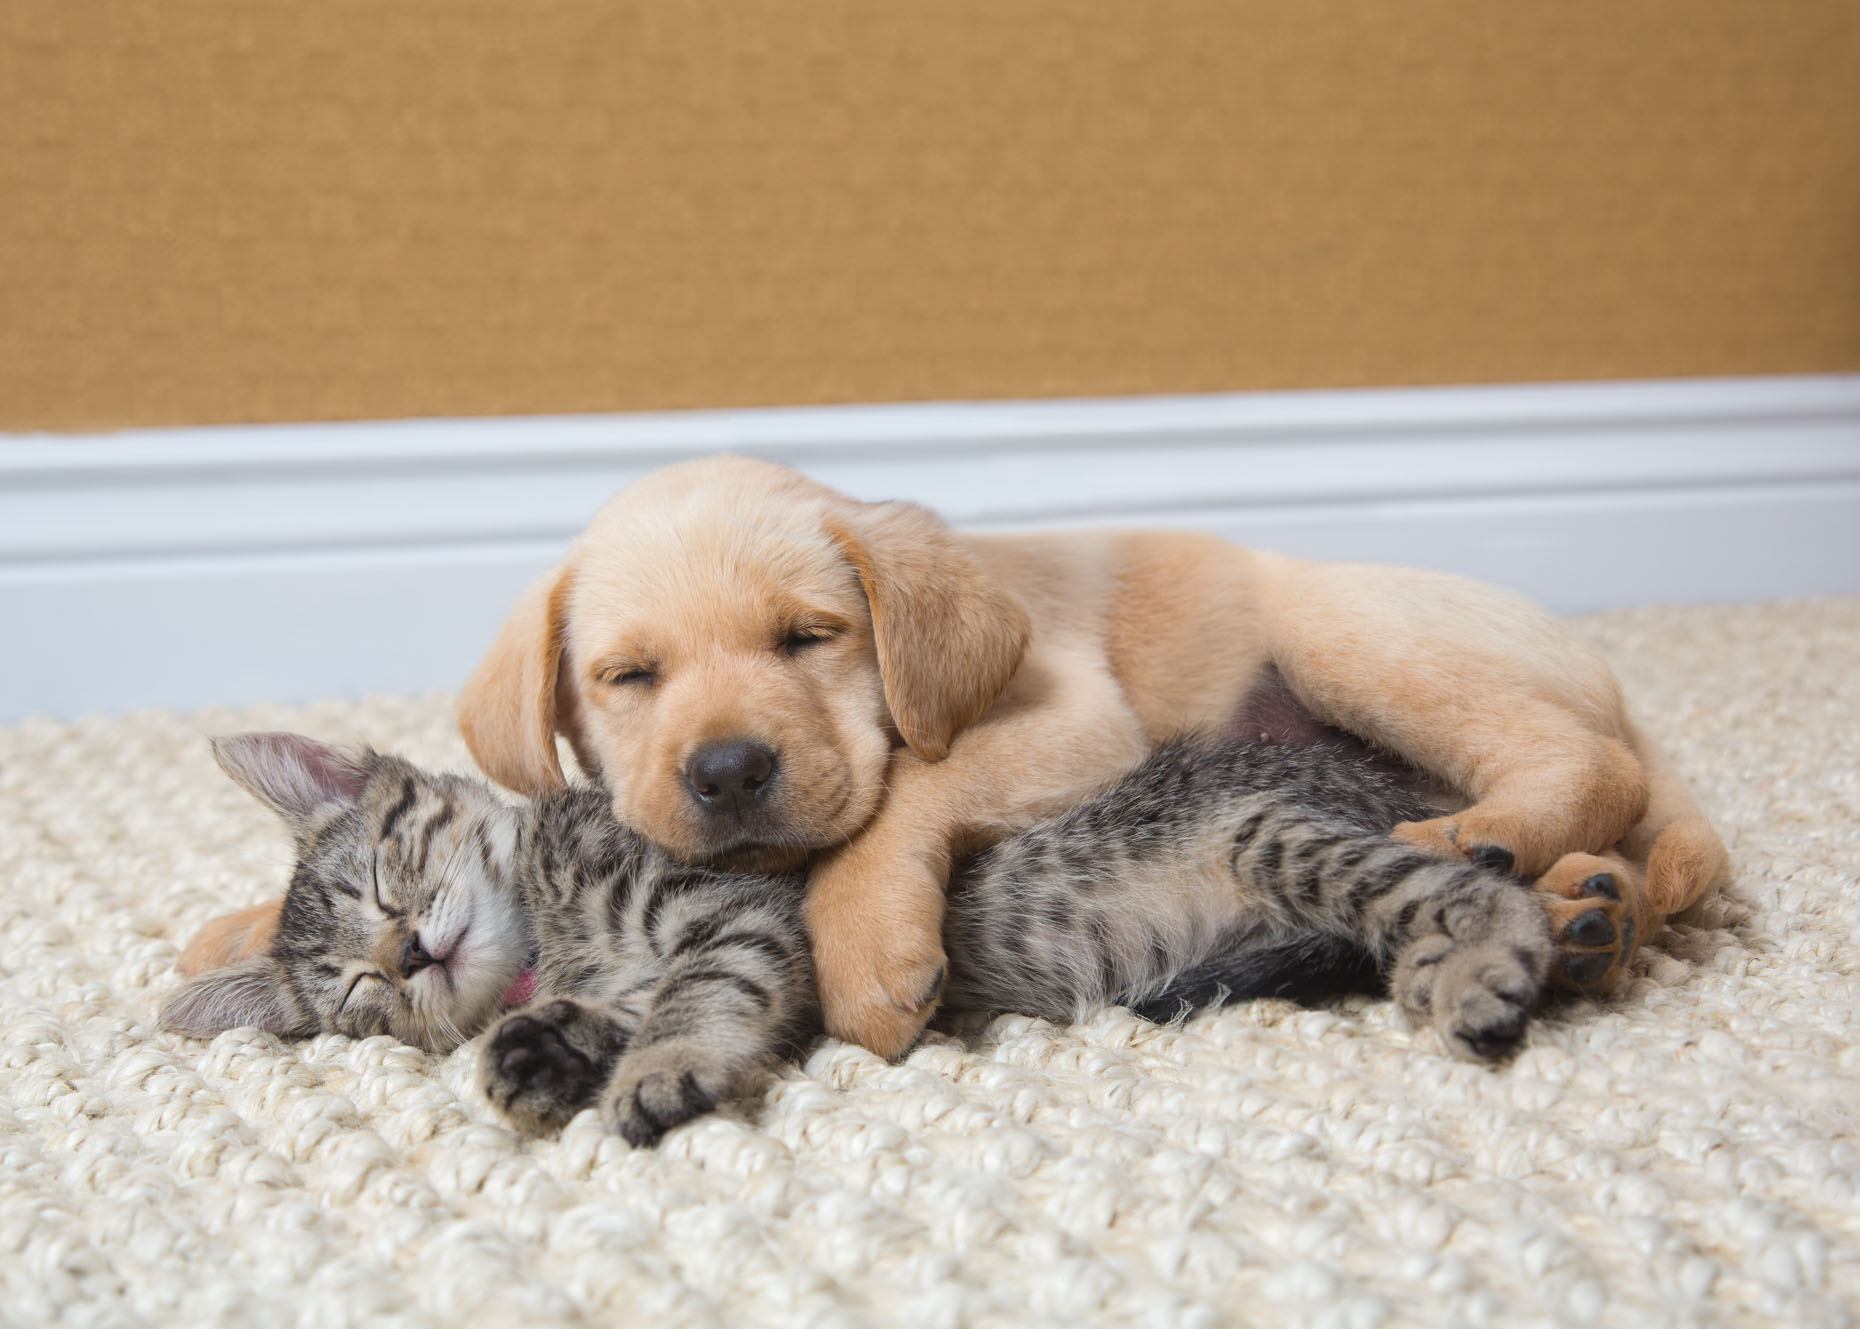 Cat and Pet Photography | Puppy and Kitten Sleeping by Mark Rogers